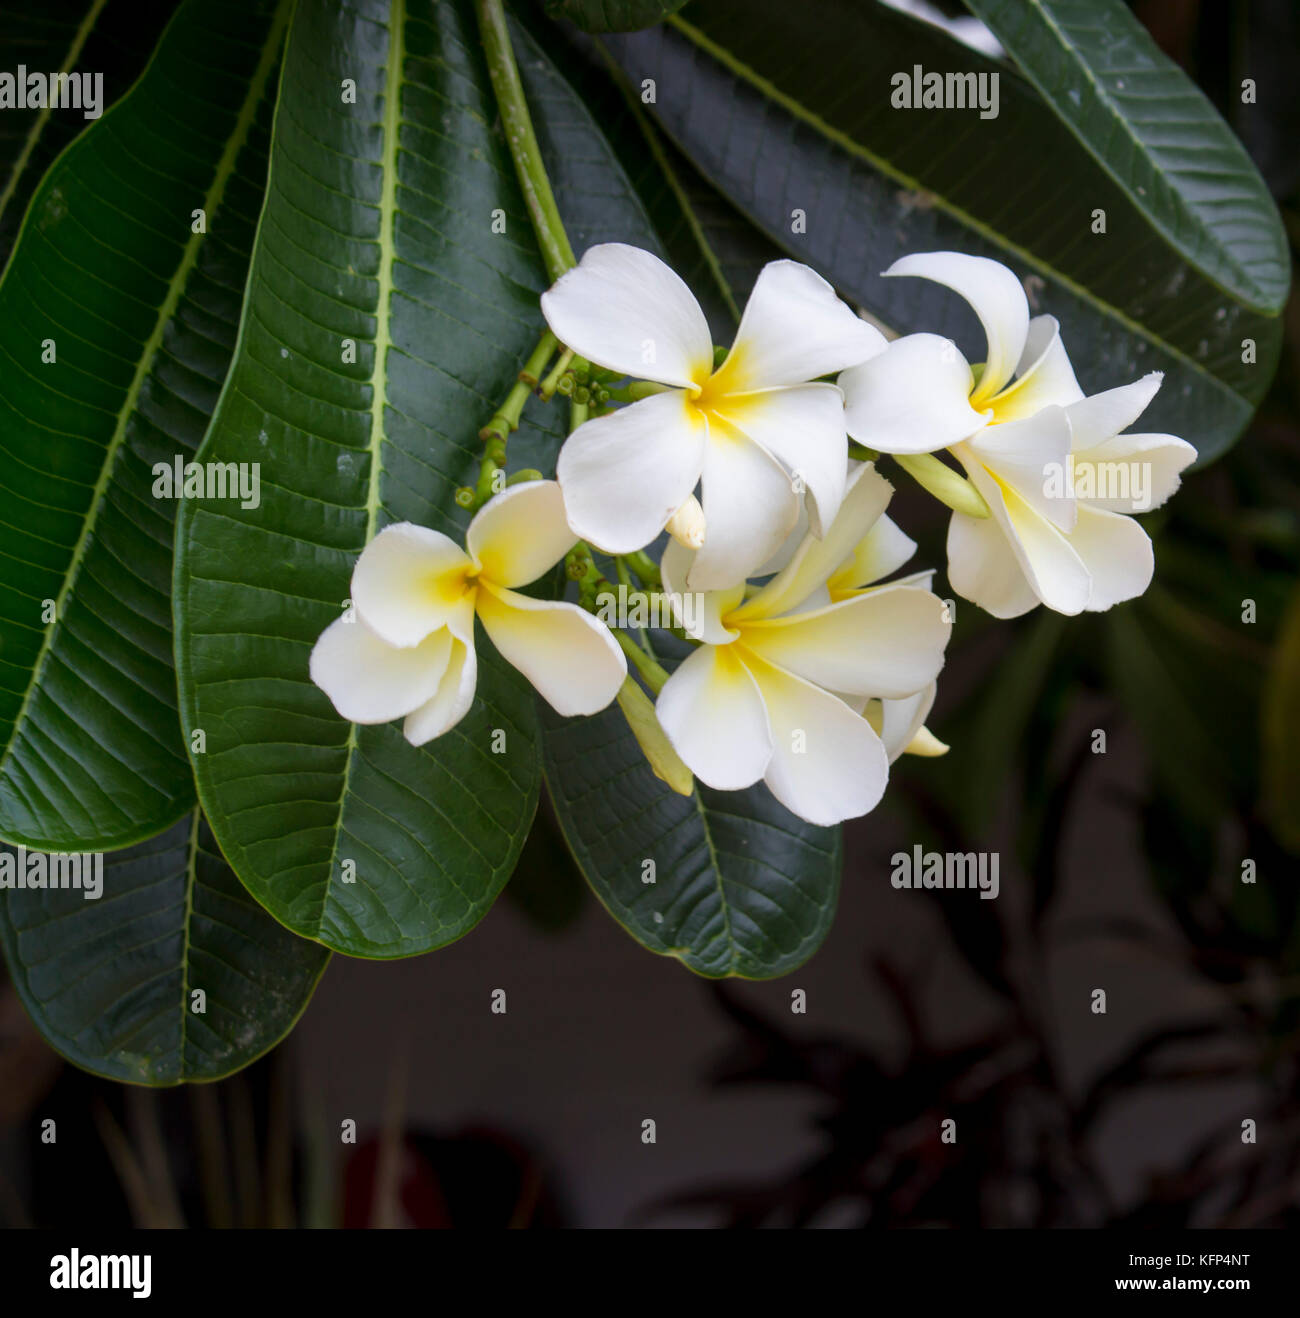 White Flowers With Yellow Centers Stock Photos White Flowers With